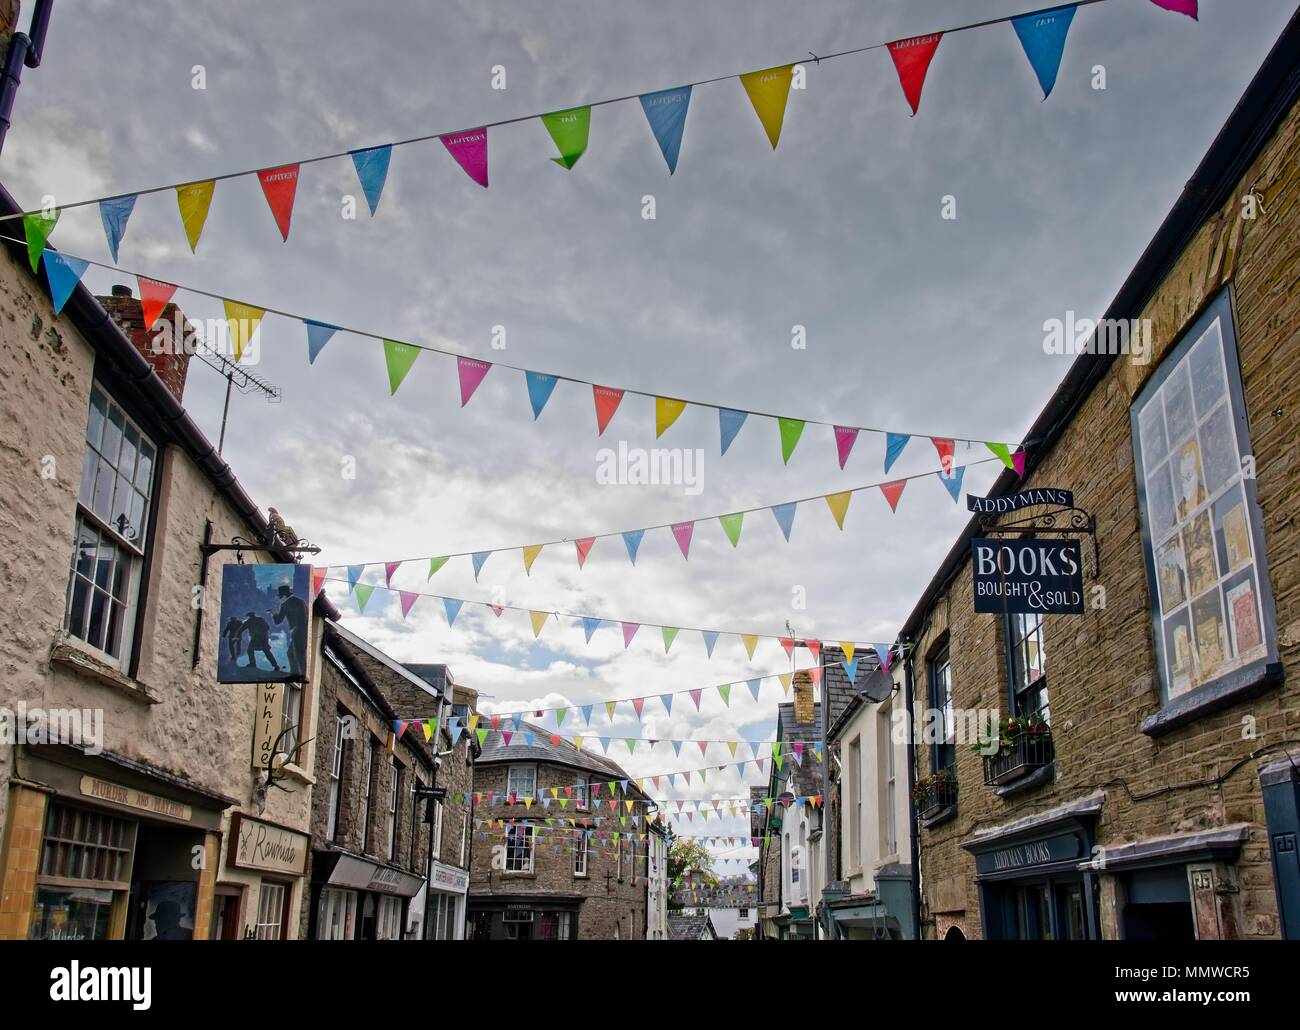 Literary Festival bunting across the street in Hay-on-Wye, Powys, Wales - Stock Image